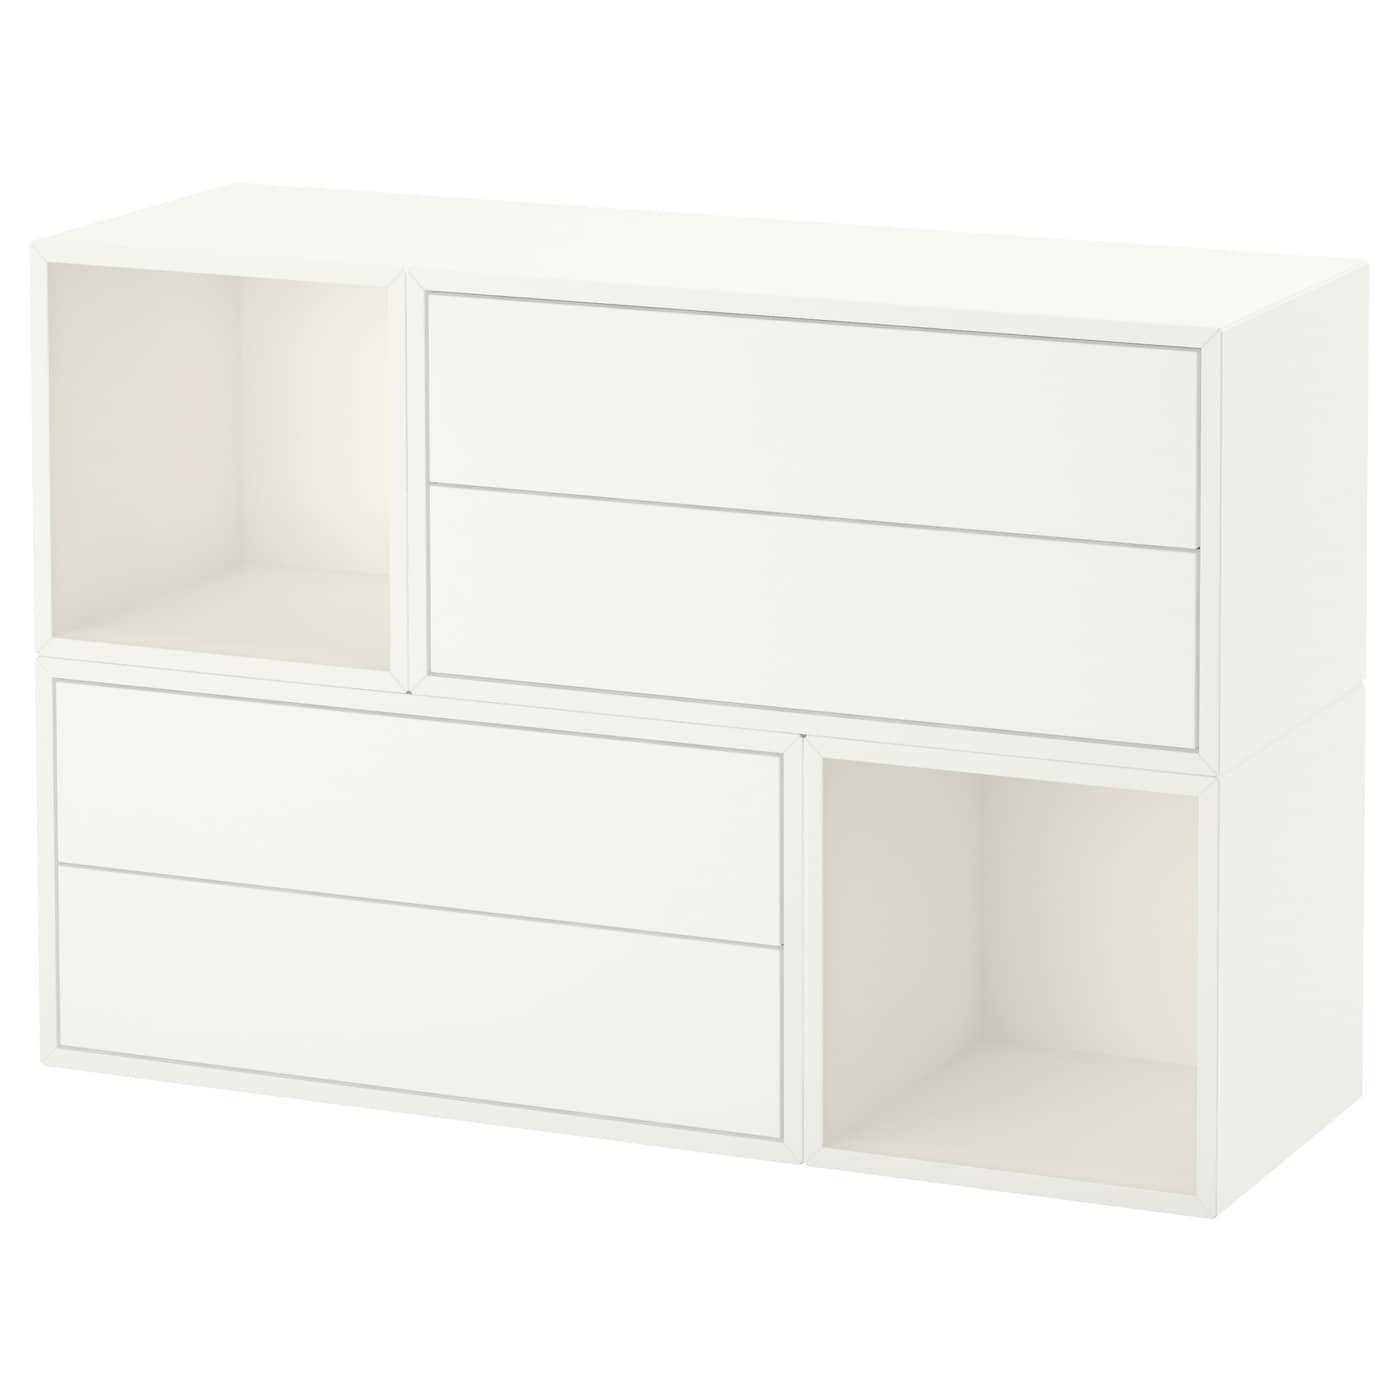 Charming IKEA EKET Wall Mounted Cabinet Combination